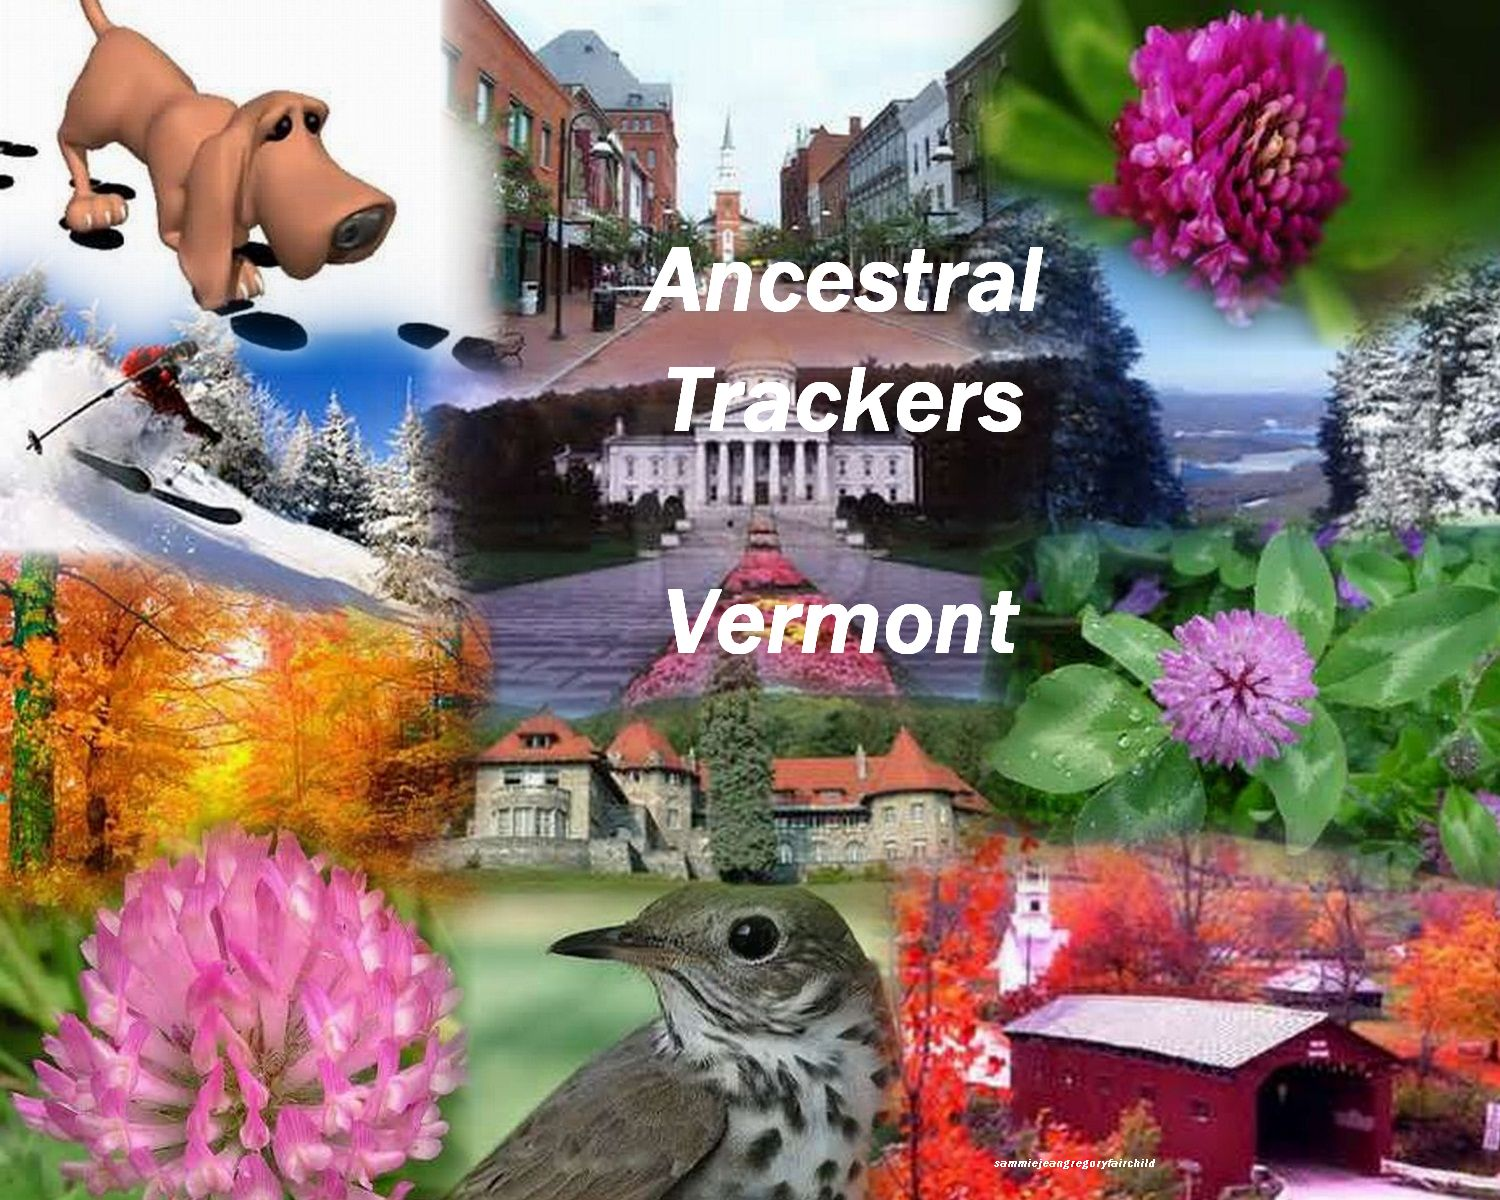 Vermont Ancestral Trackers home page.